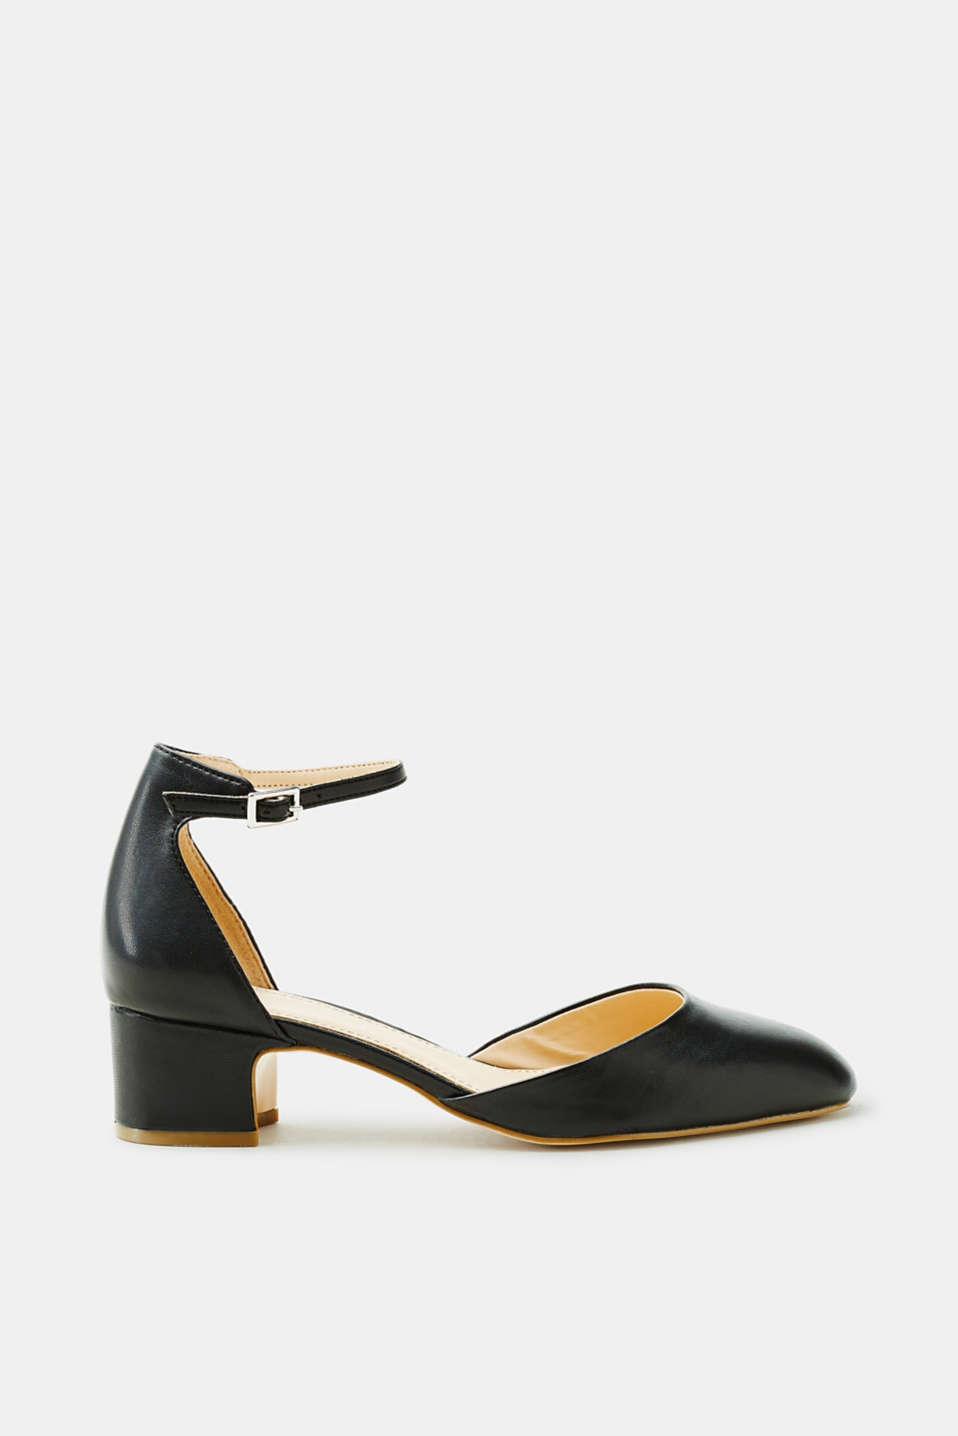 Esprit - Court shoes with a block heel and an ankle strap